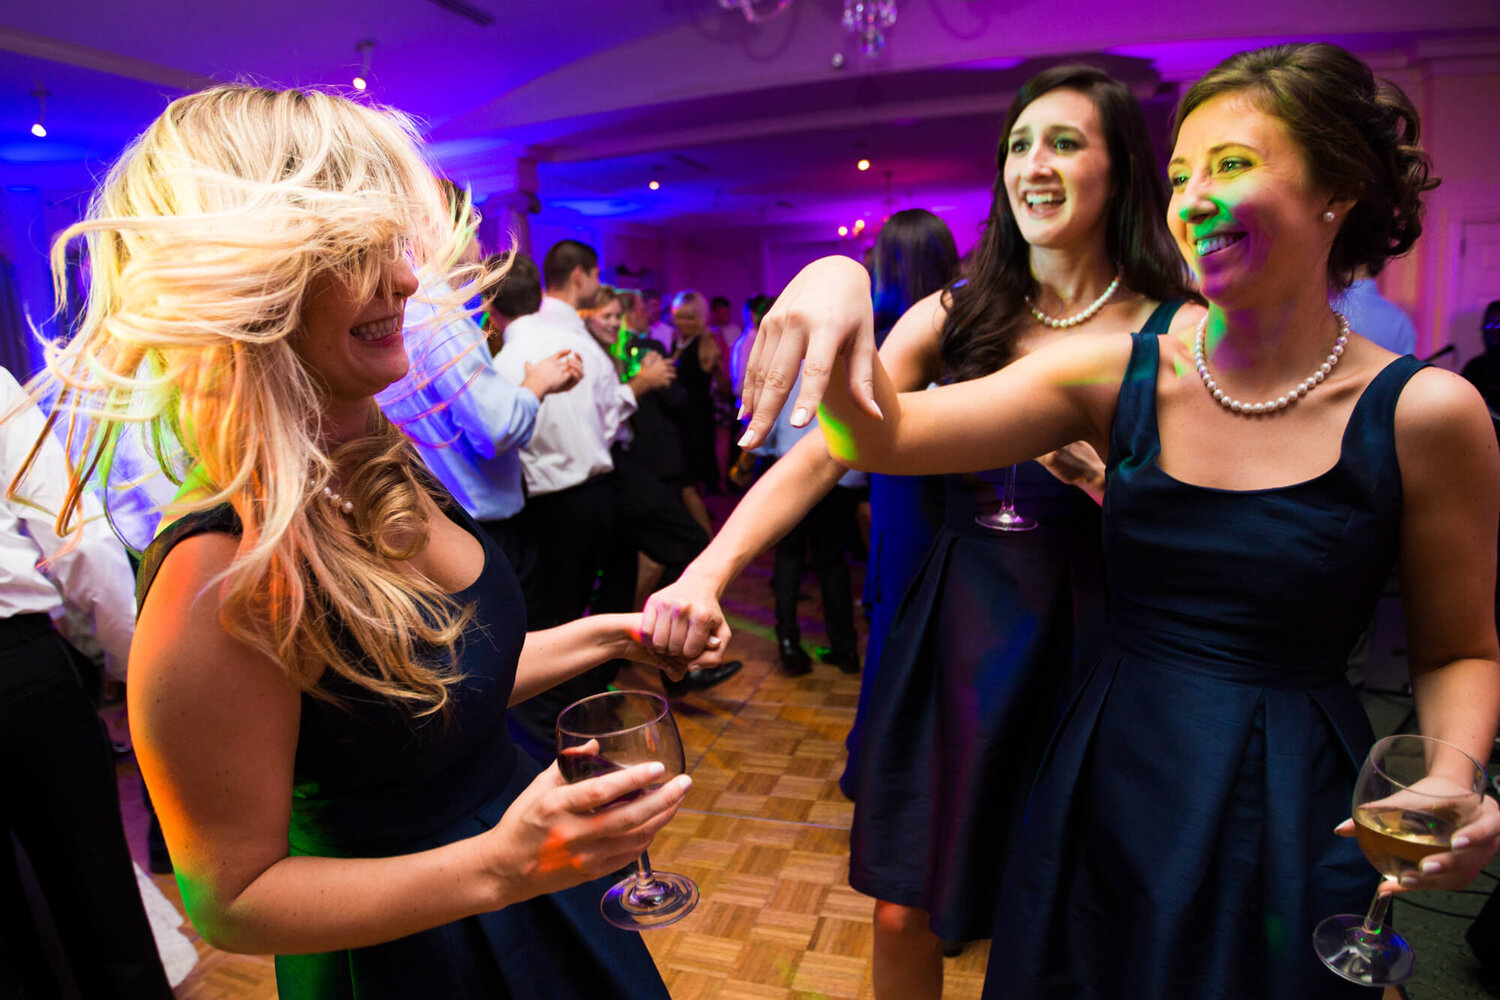 07-old-warson-country-club-st-louis-wedding-guests-dancing.jpg